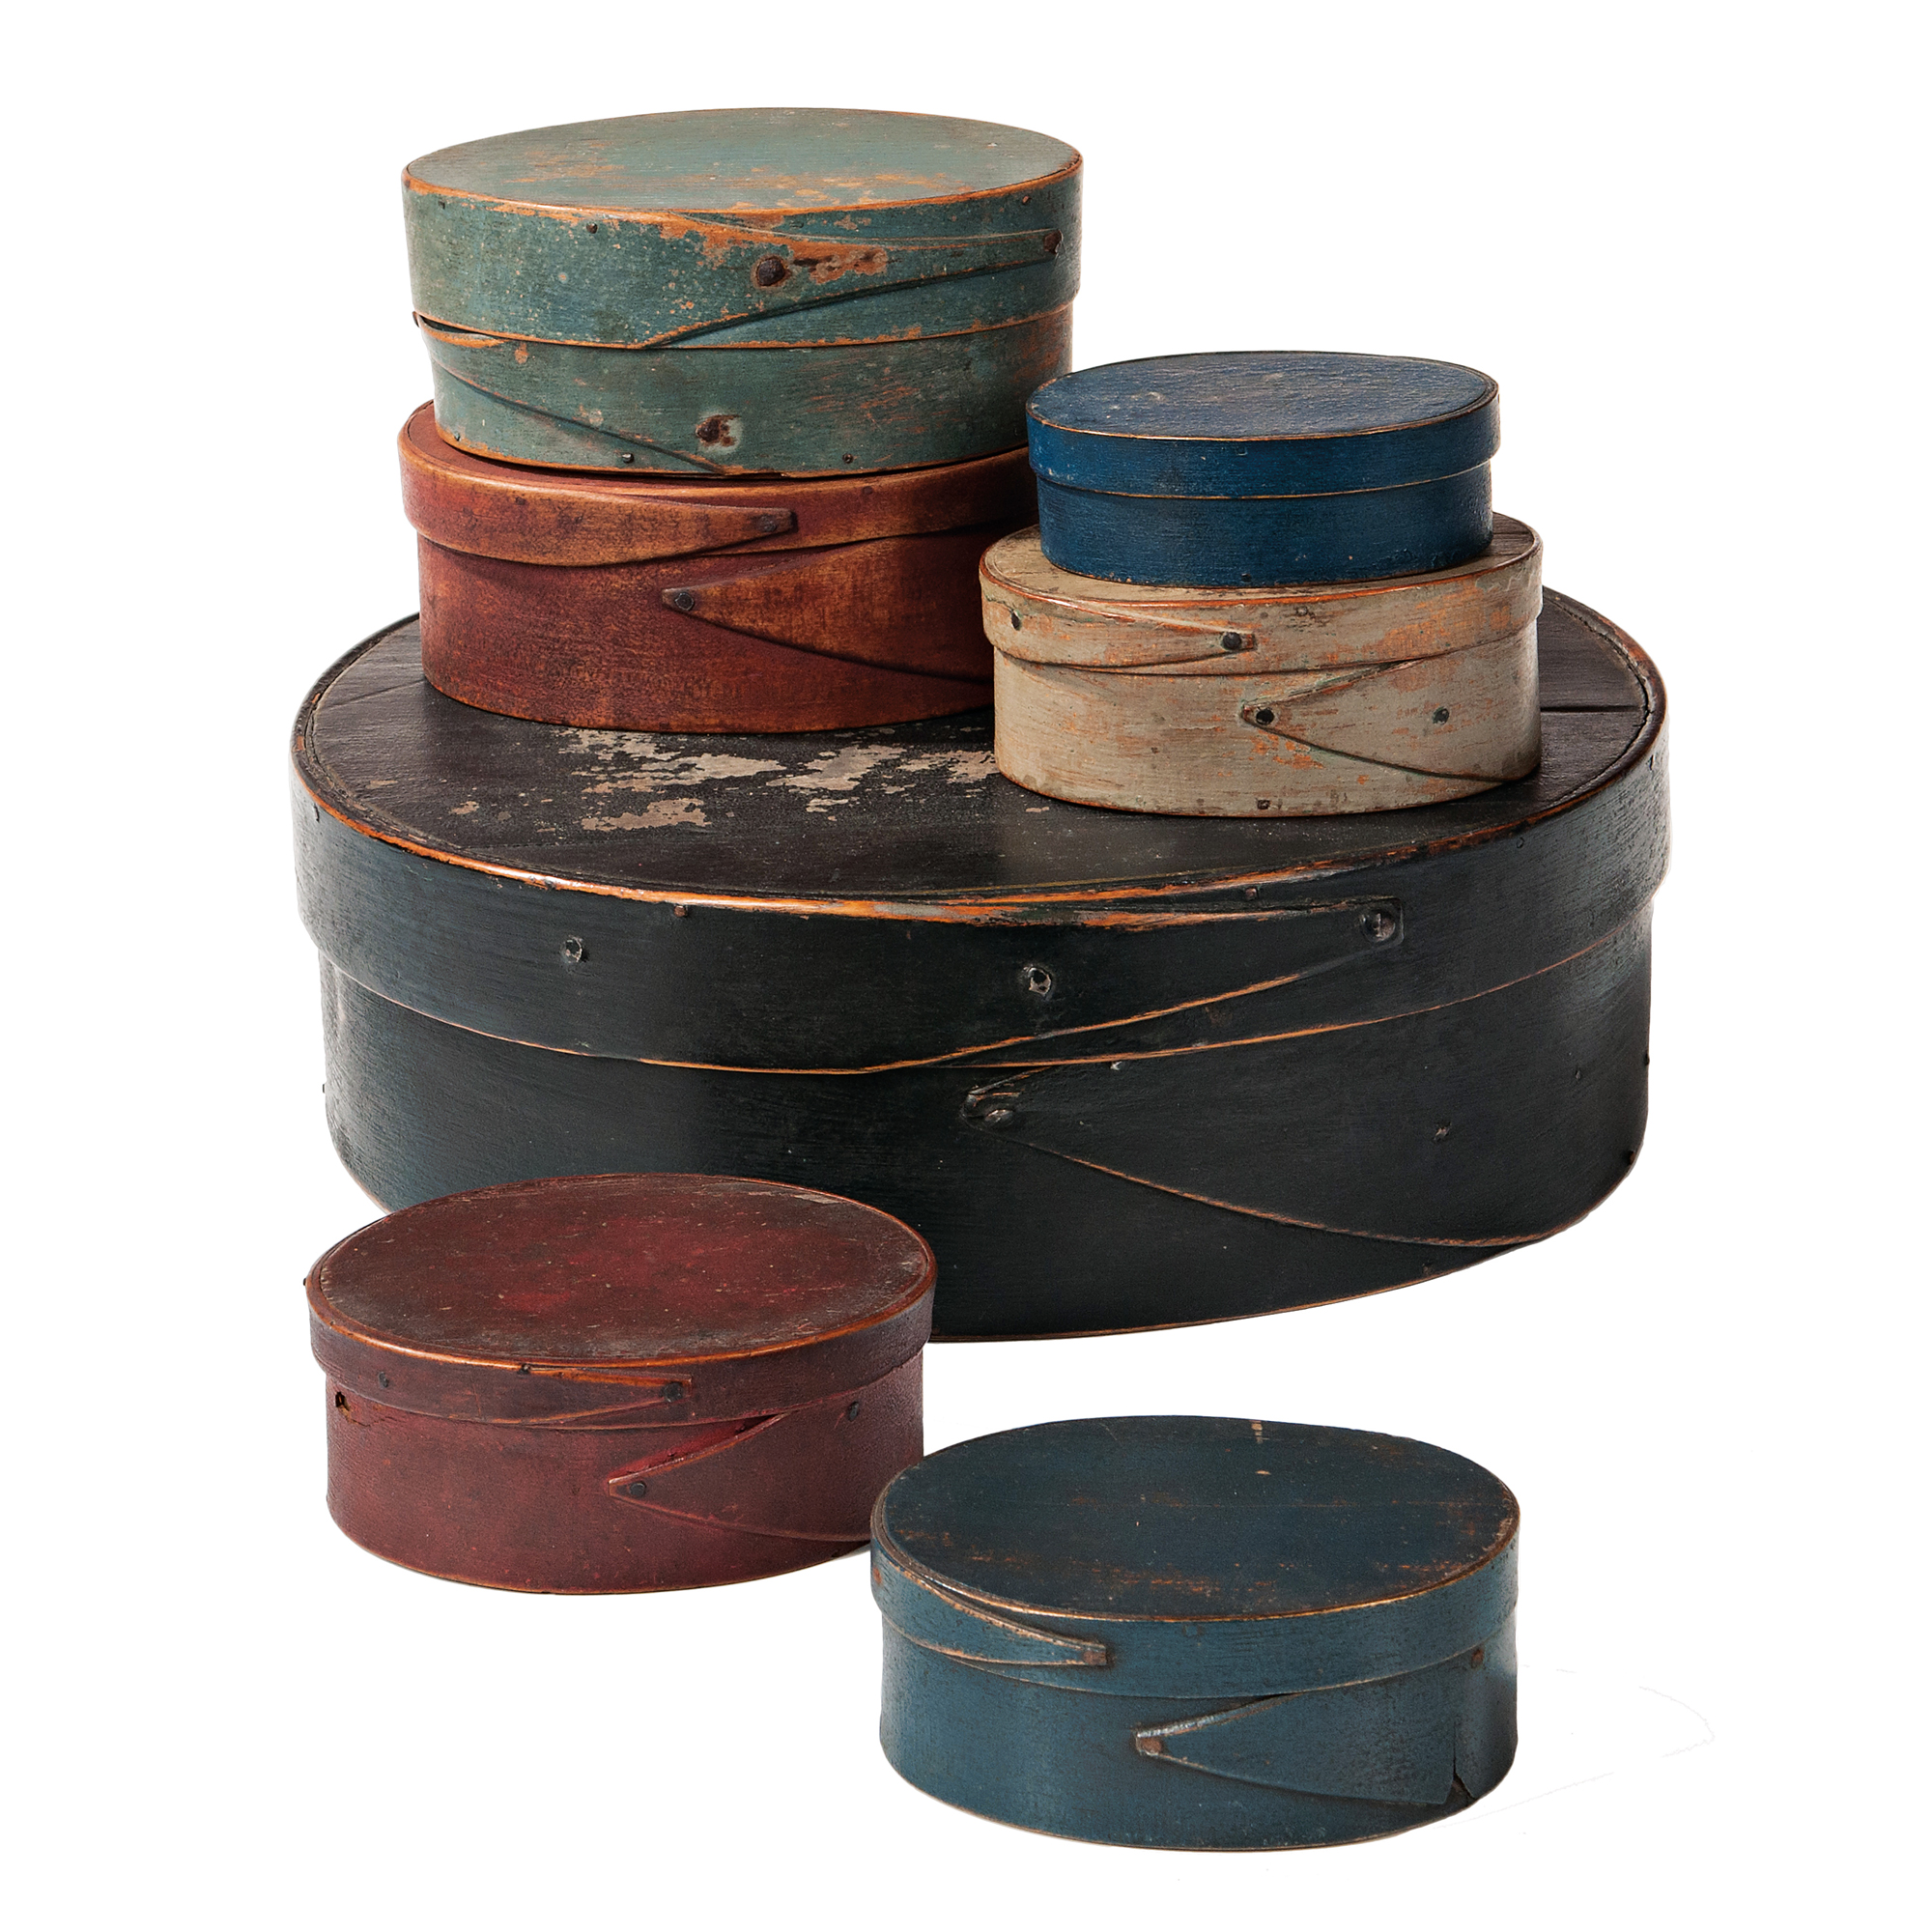 Stack of Seven Painted Pantry Boxes (Lot 1011, Estimate: $1,000-1,500)